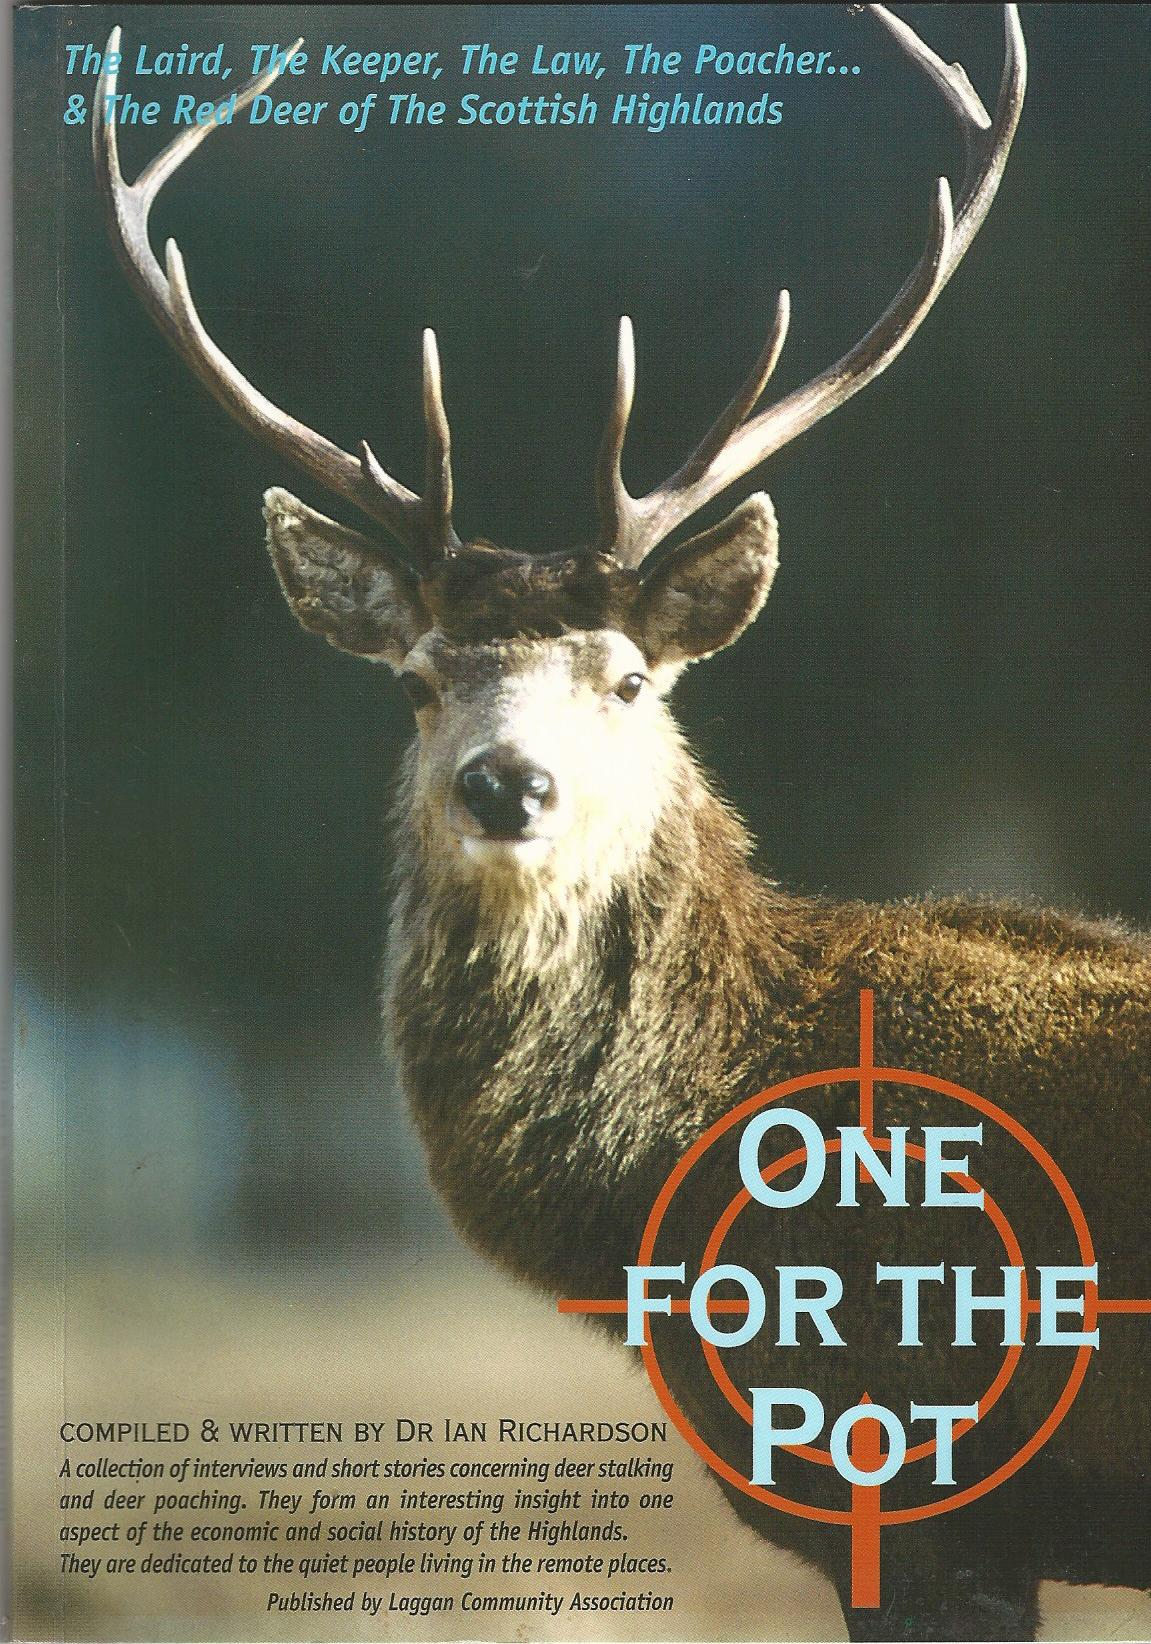 Image for One for the Pot: The Laird, the Law, the Poacher and the Red Deer of the Scottish Highlands